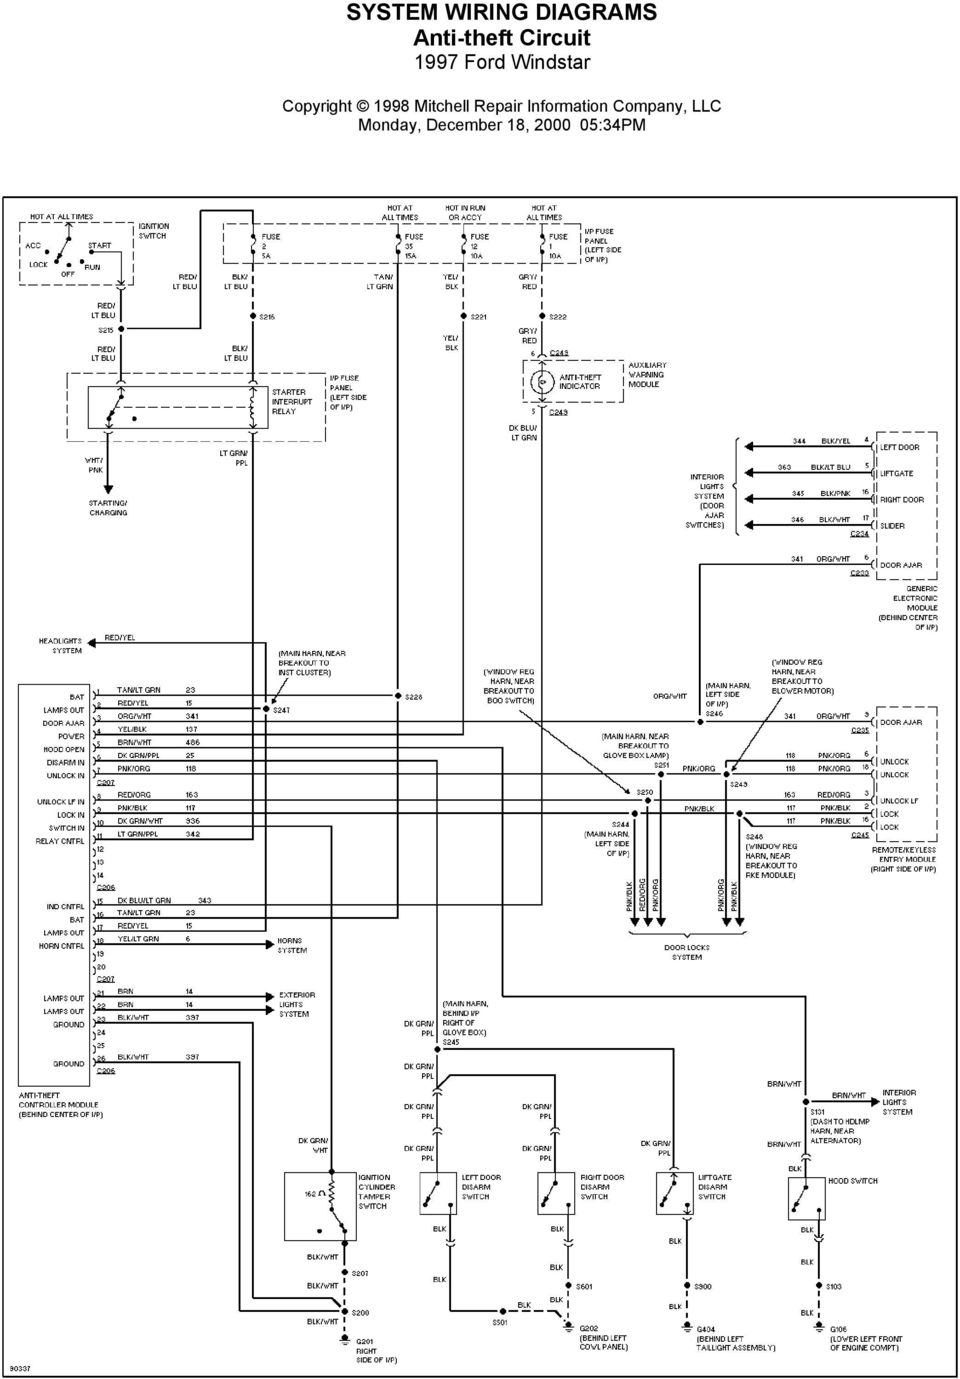 DE_9245] 1997 Ford Windstar System Wiring Diagrams For Front Washer WiperRious Umng Rect Mohammedshrine Librar Wiring 101